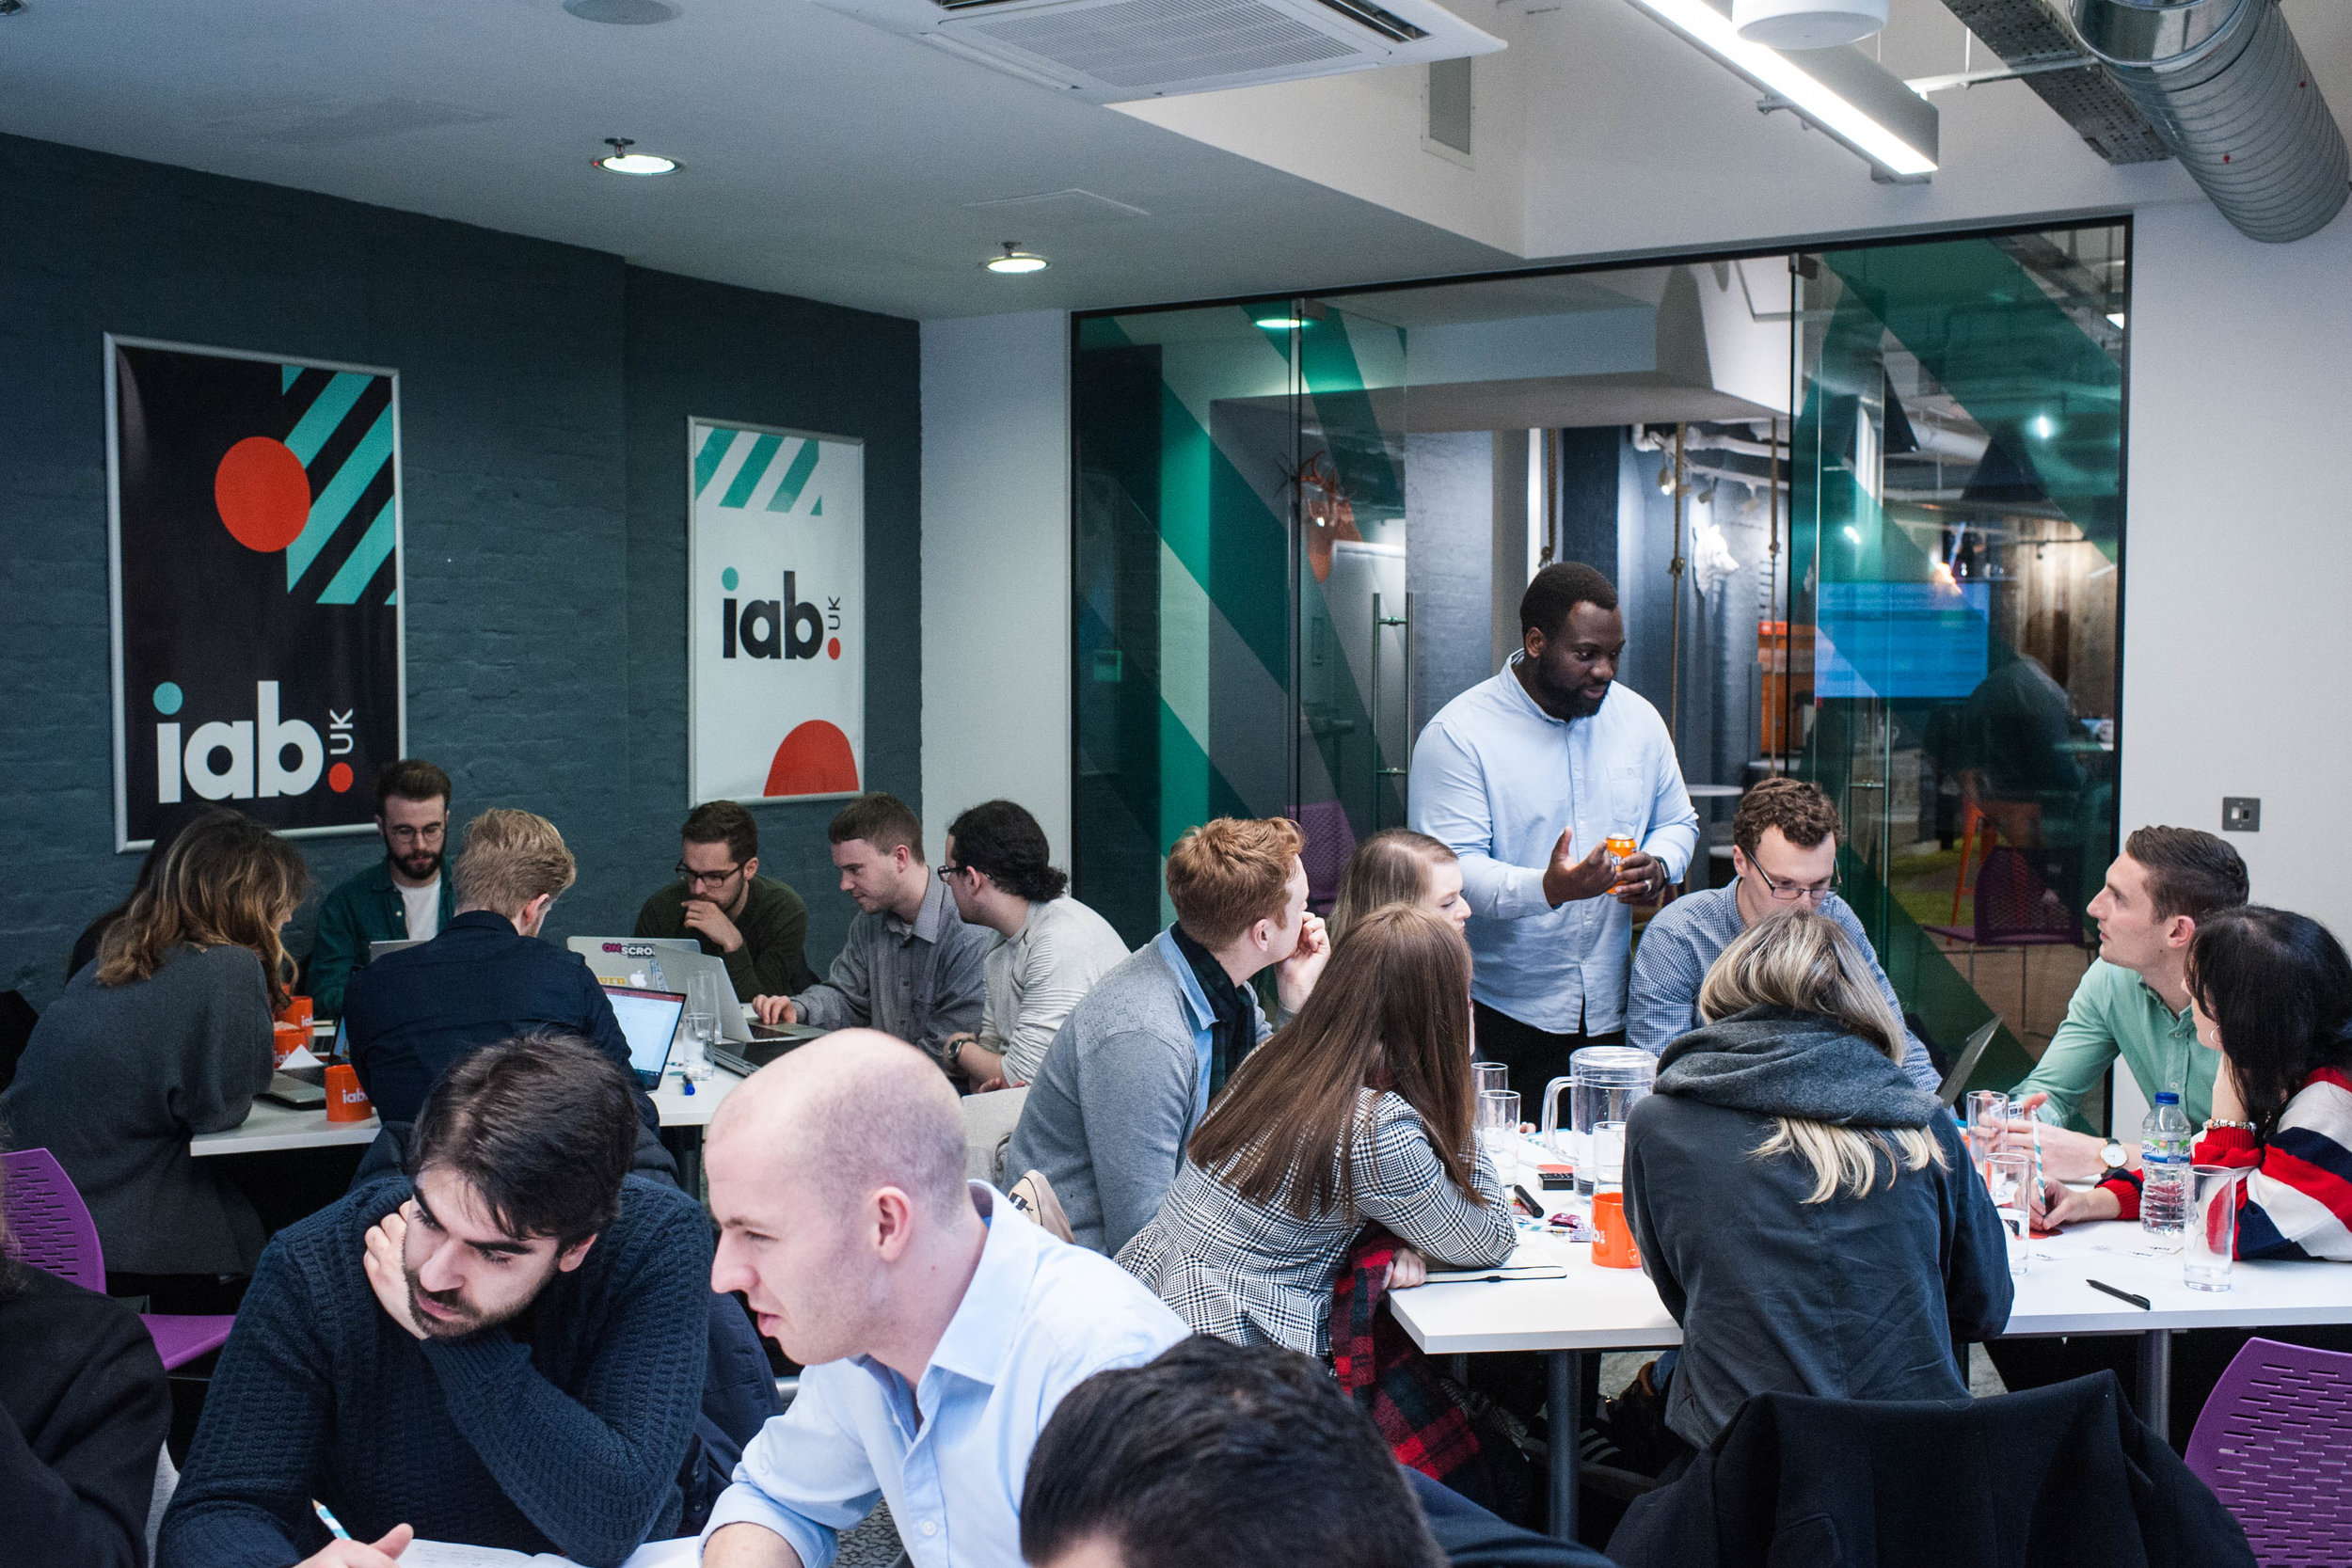 IAB Uk_Incidental Shots_SM (221 of 312).jpg